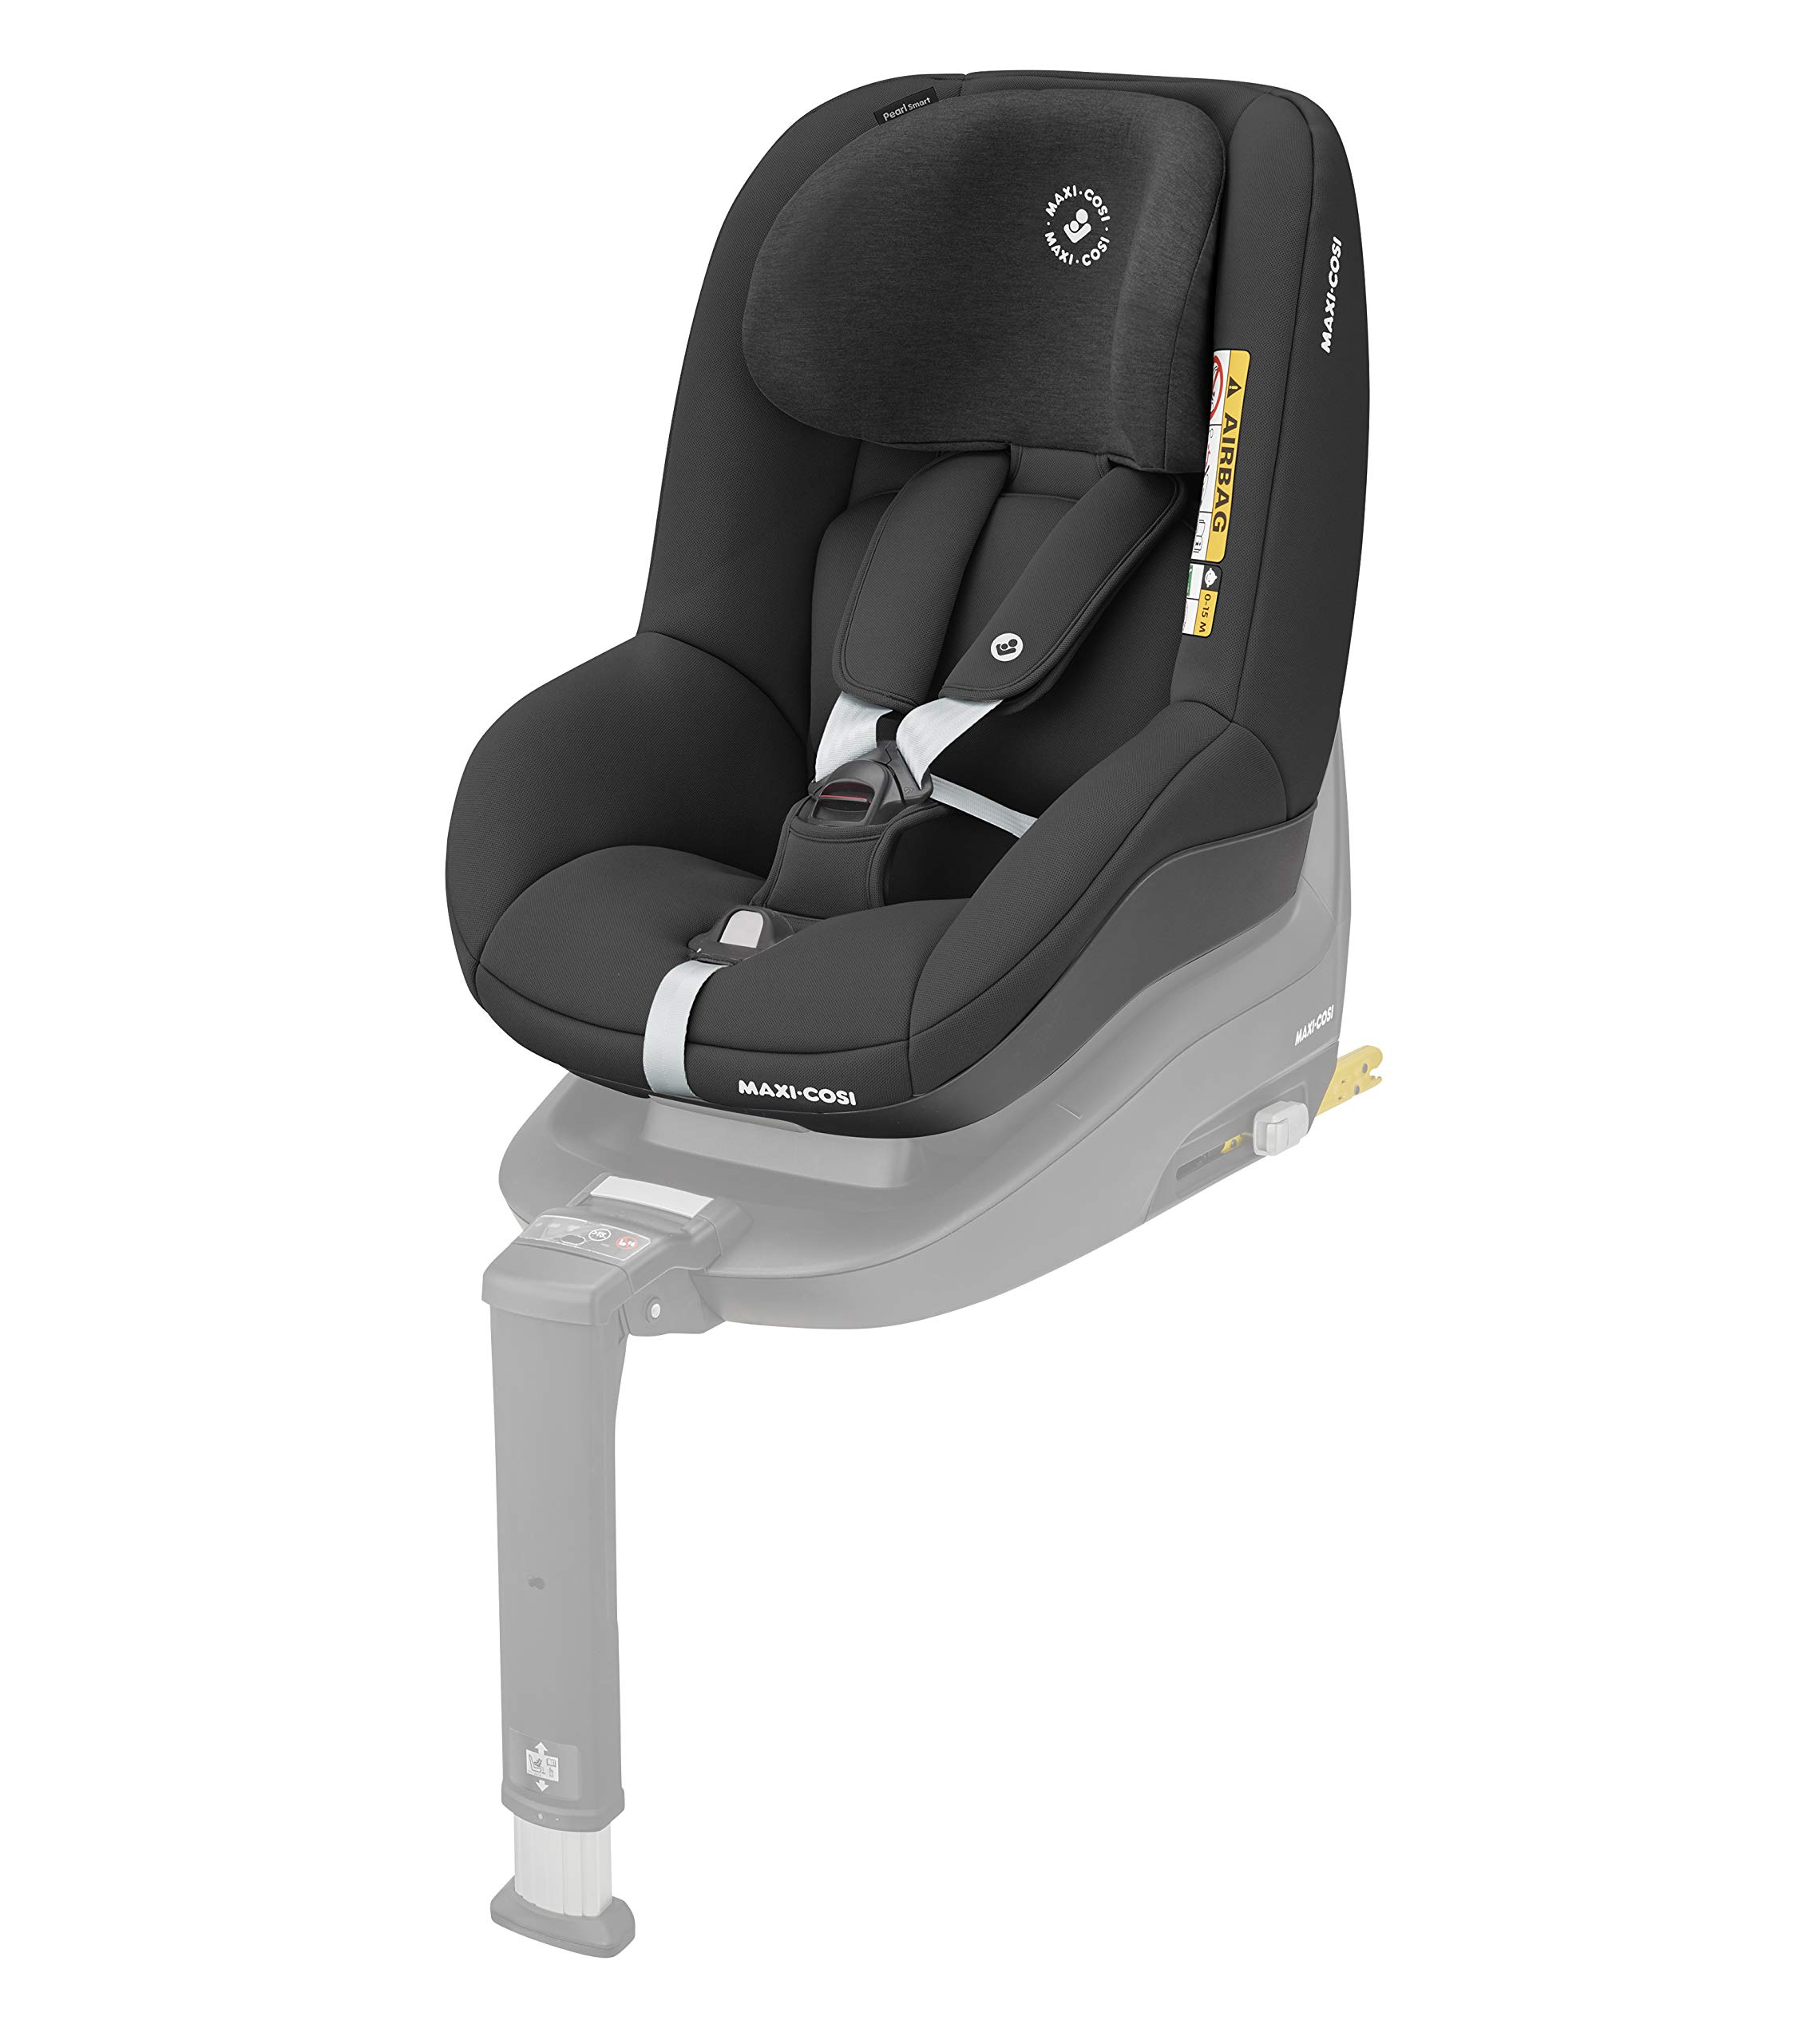 Maxi-Cosi Pearl Smart i-Size Toddler Car Seat, 67 - 105 cm, Authentic Black, 6.88 kg Maxi-Cosi Car seat for toddlers, suitable from 6 months to 4 years (9 - 18 kg, 67 - 105 cm) Must be installed in combination with family fix one i-size base I-size (r129) car seat legislation, due to rearward-facing travel up to 105 cm (4 years) 1